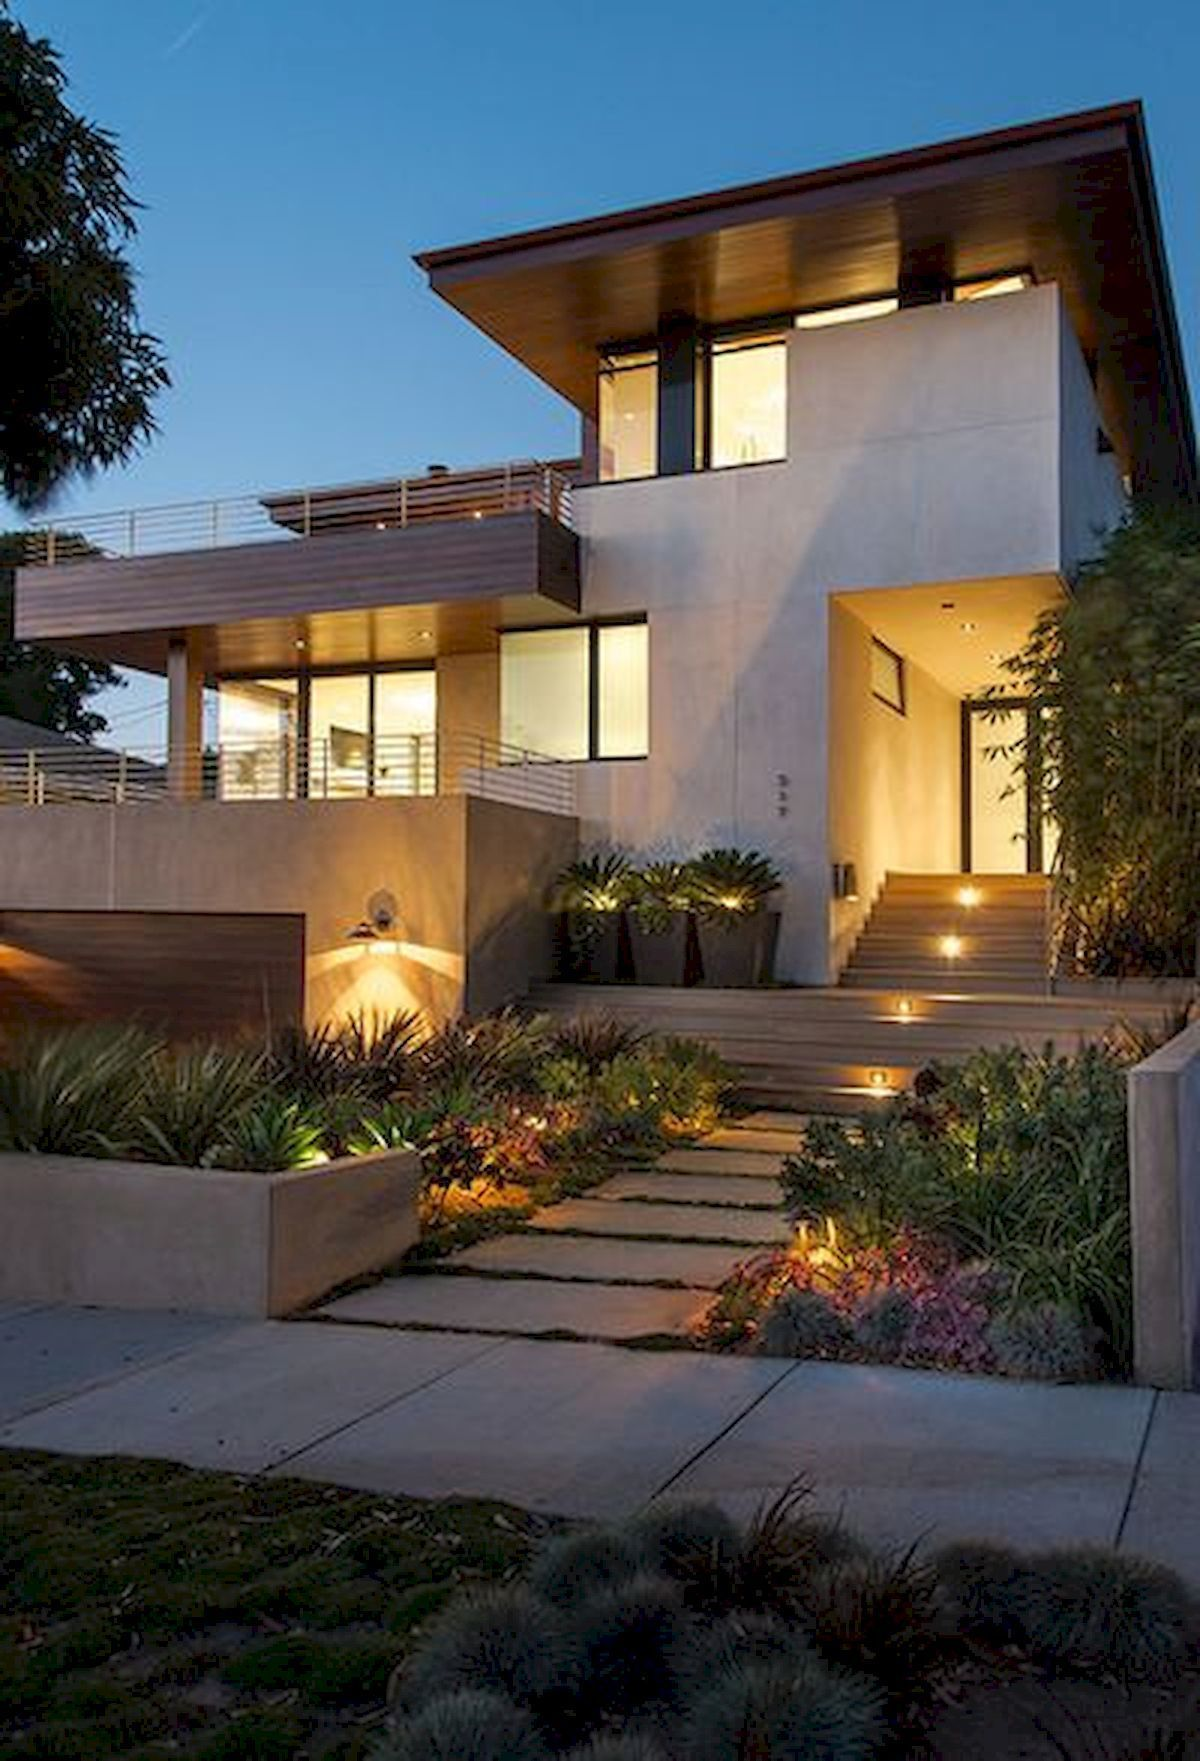 50 Amazing Simple House Facade Ideas to Inspire You in